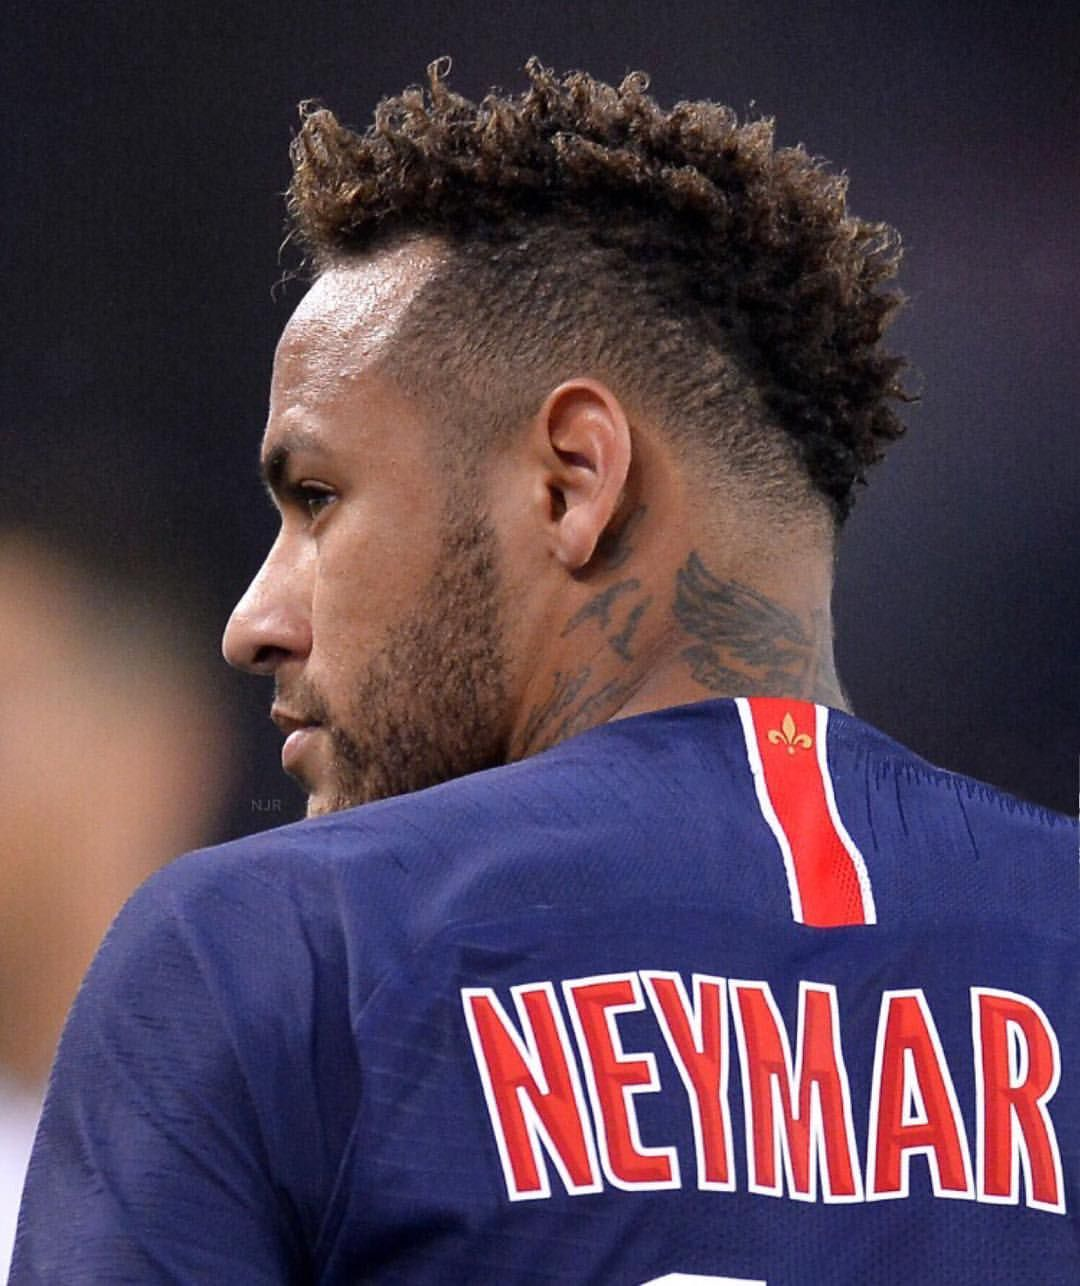 Pin By Caroline On Neymar Neymar Neymar Jr Hairstyle